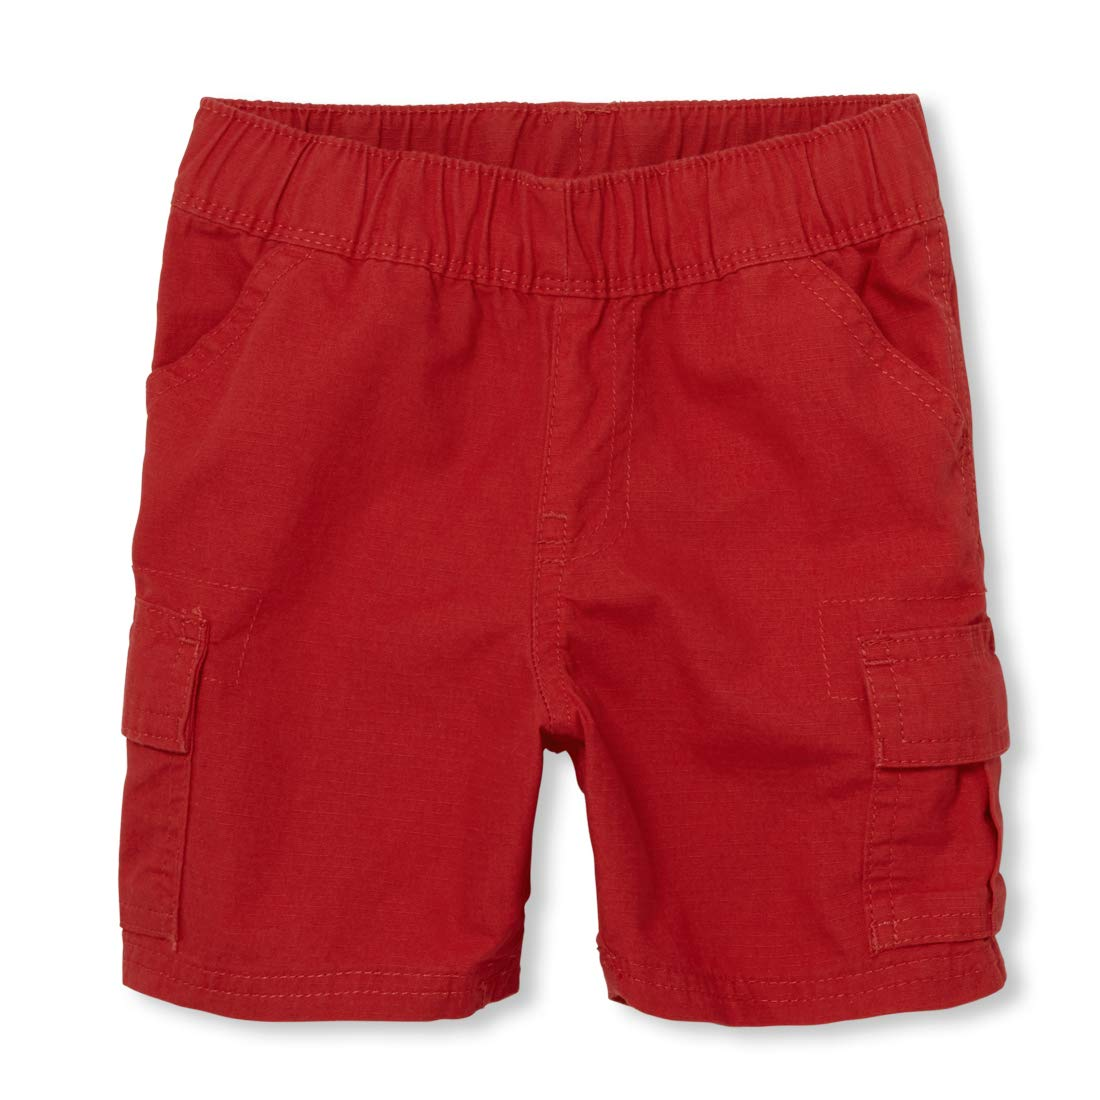 The Children's Place Baby Boys' Toddler Pull On Cargo Shorts, Ruby 60634, 4T by The Children's Place